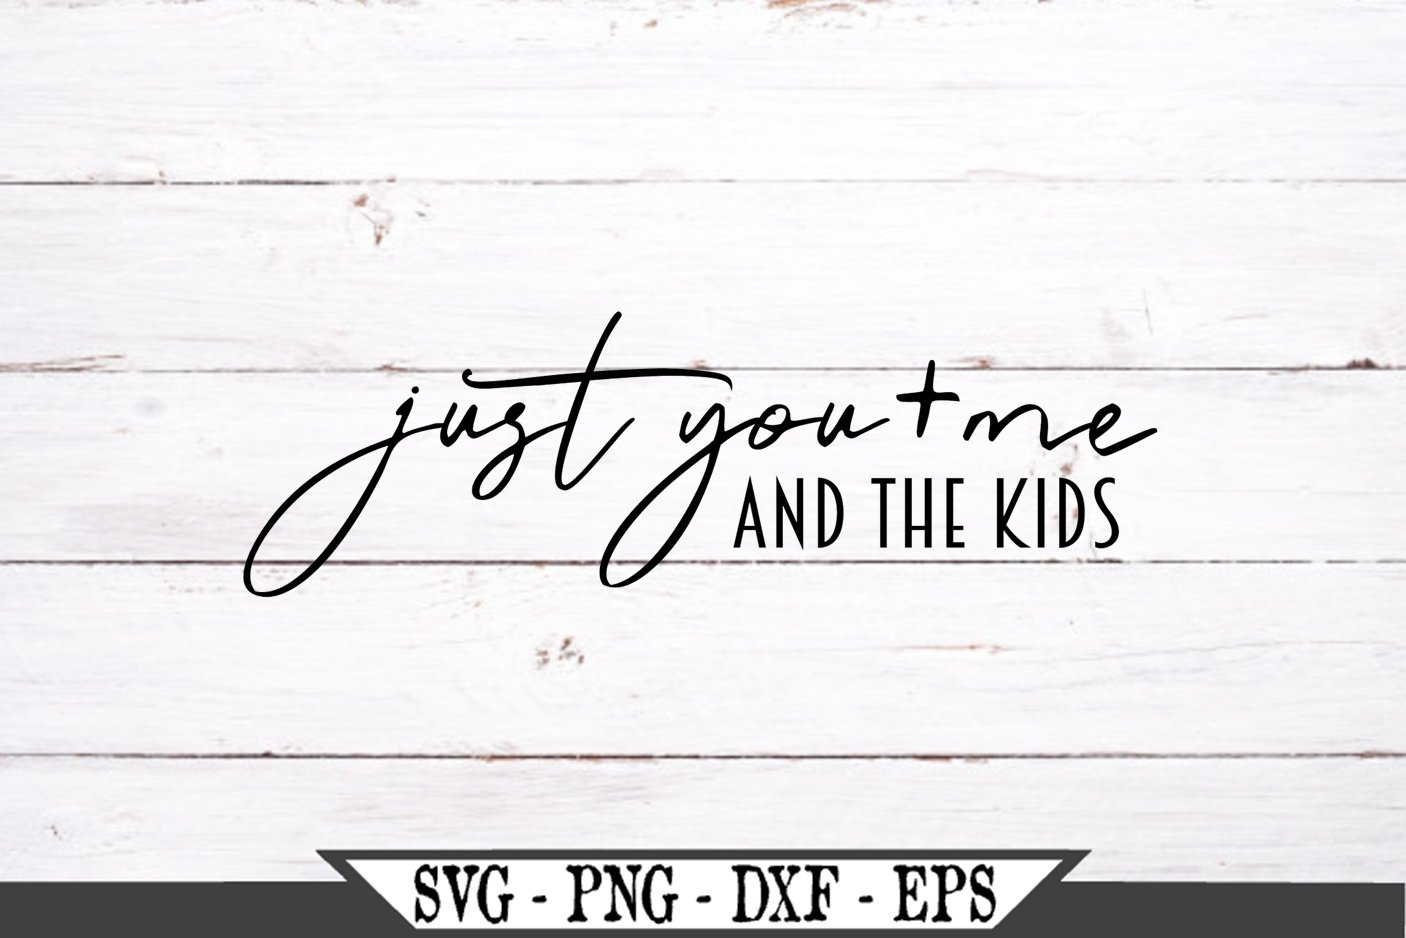 Just You And Me And The Kids SVG example image 2